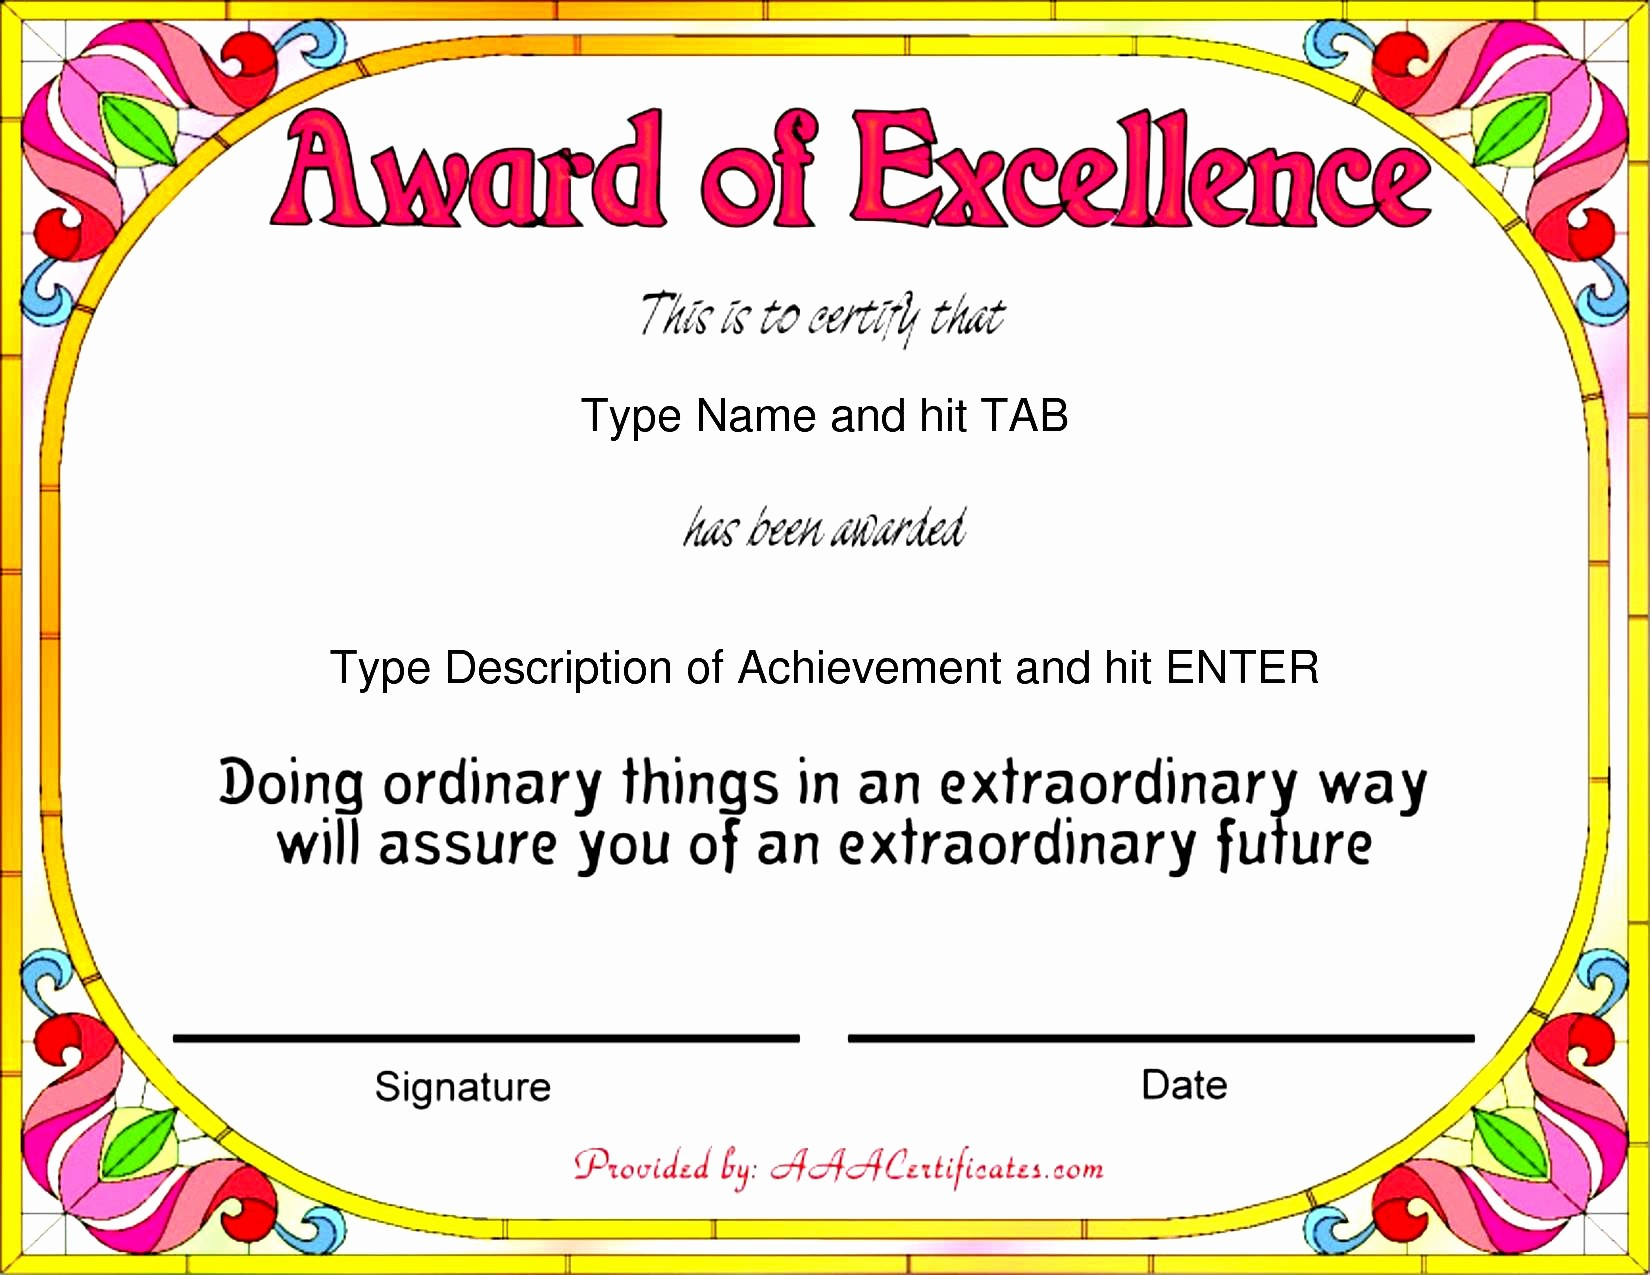 Certificate Of Excellence for Employee Inspirational 43 Stunning Certificate and Award Template Word Examples